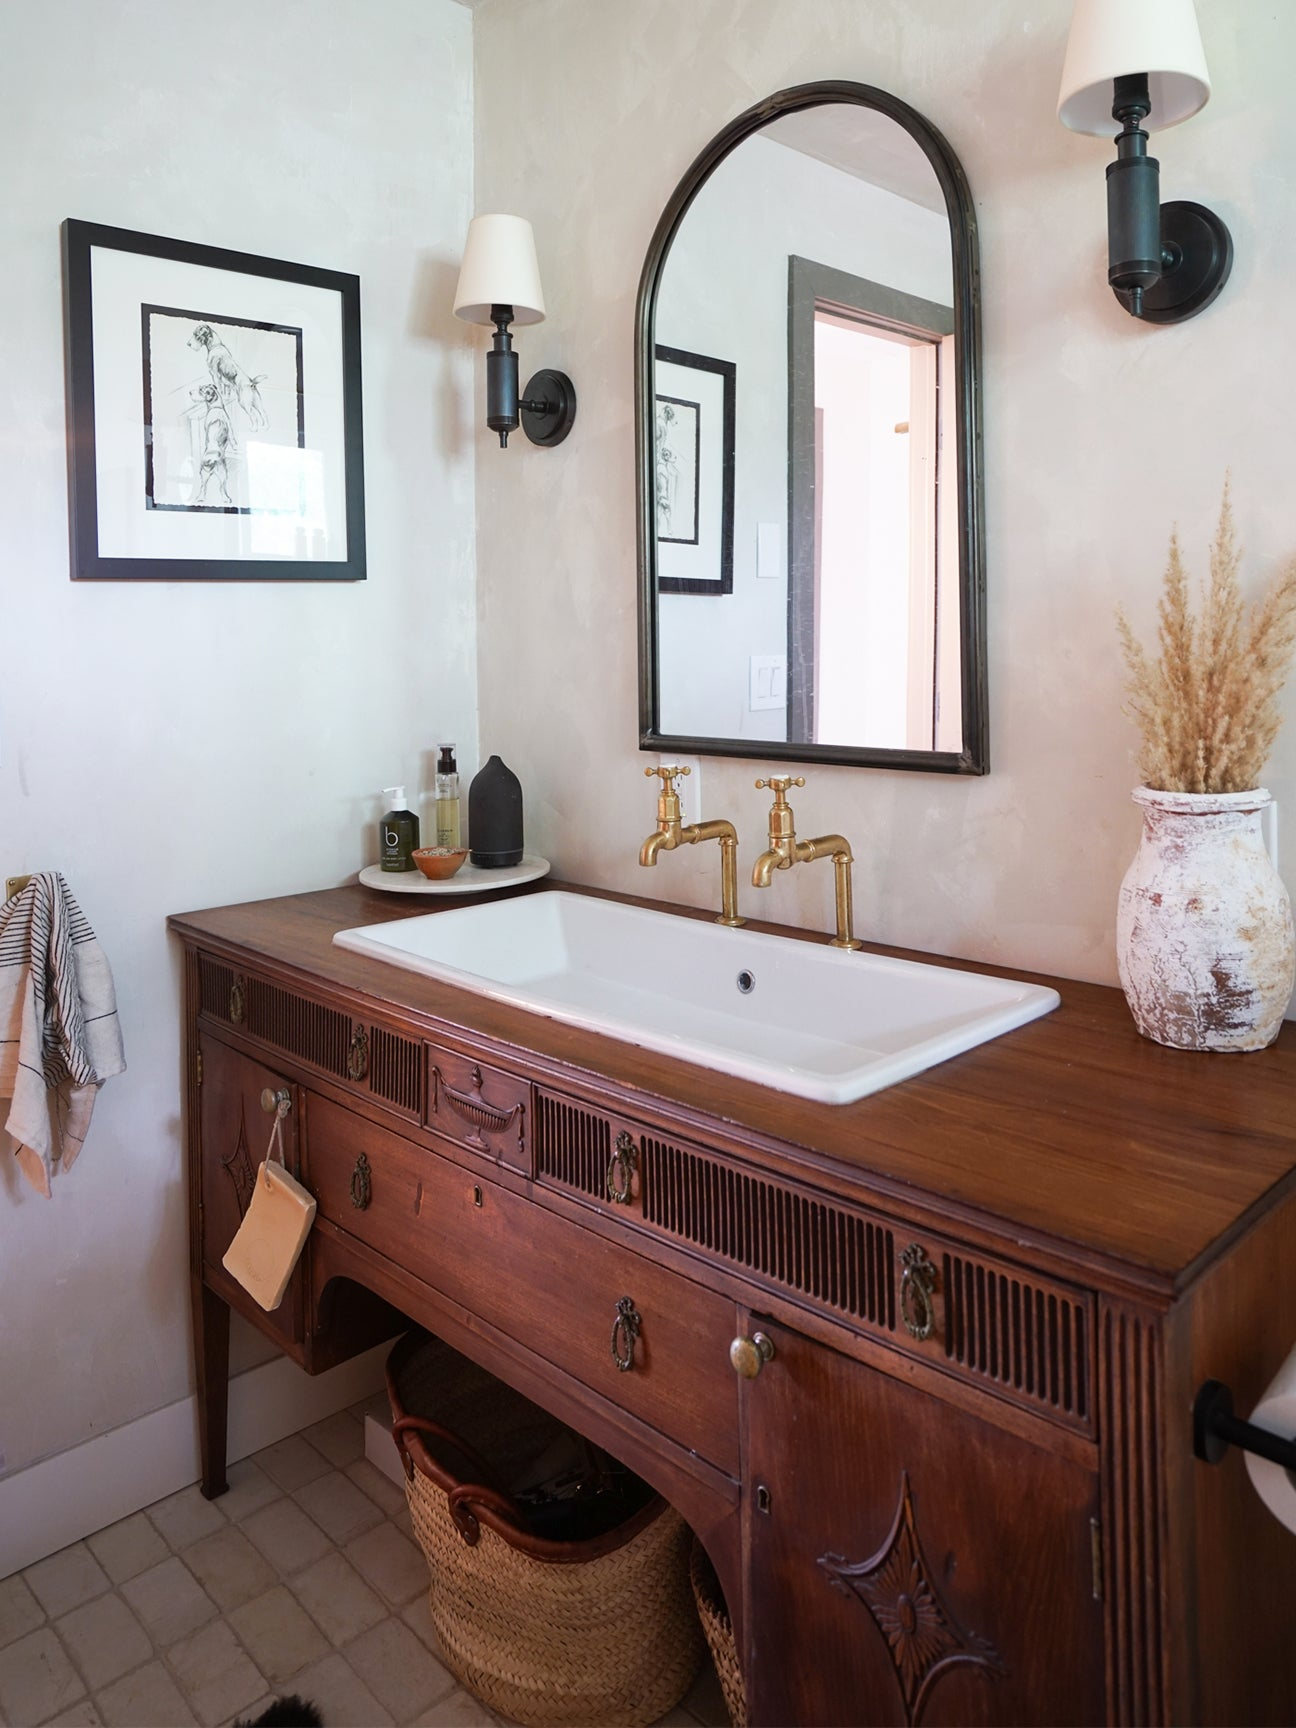 antique table repurposed as a bathroom vanity with a sink